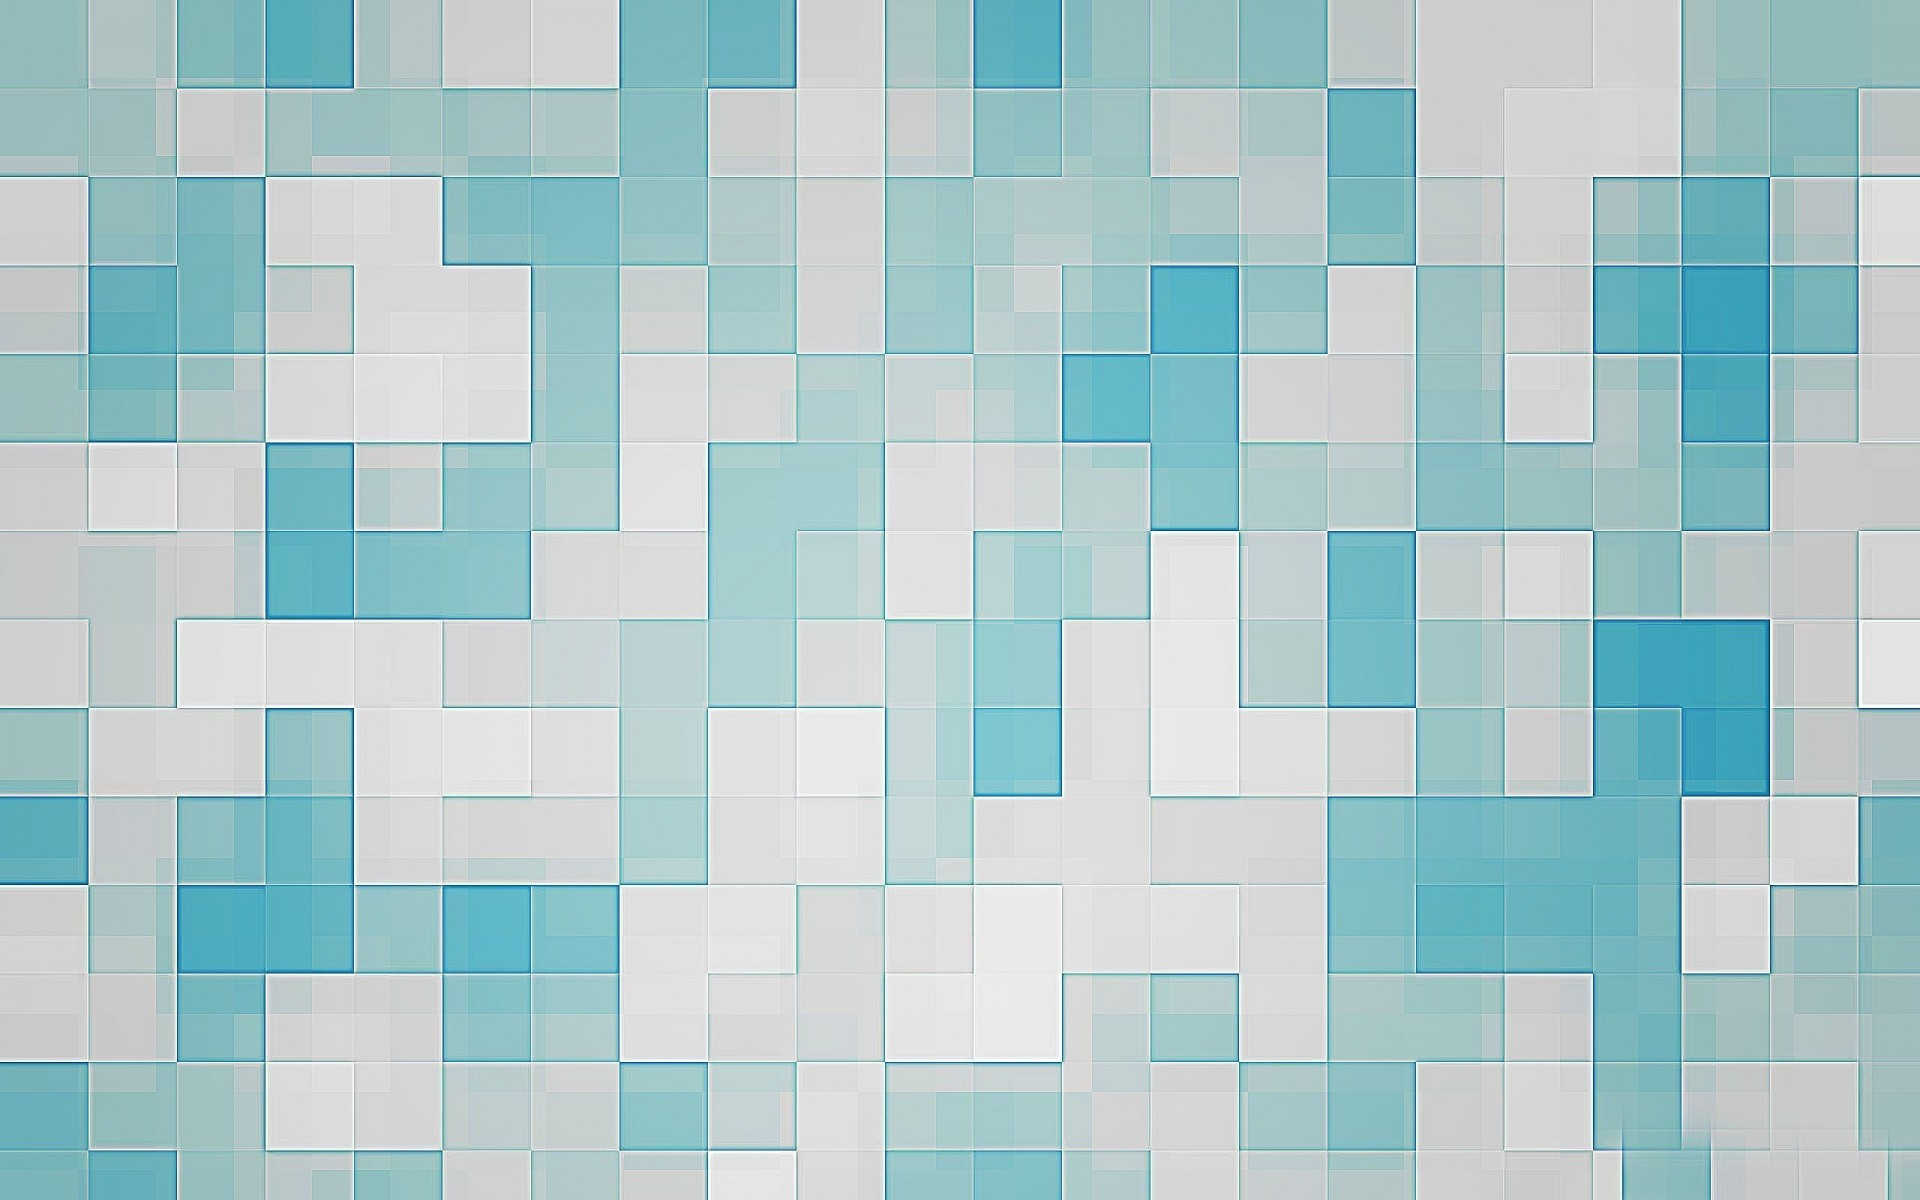 minimalism square geometric mosaic pattern wallpaper tile design retro seamless abstract texture fabric repetition background paper textile desktop illustration art